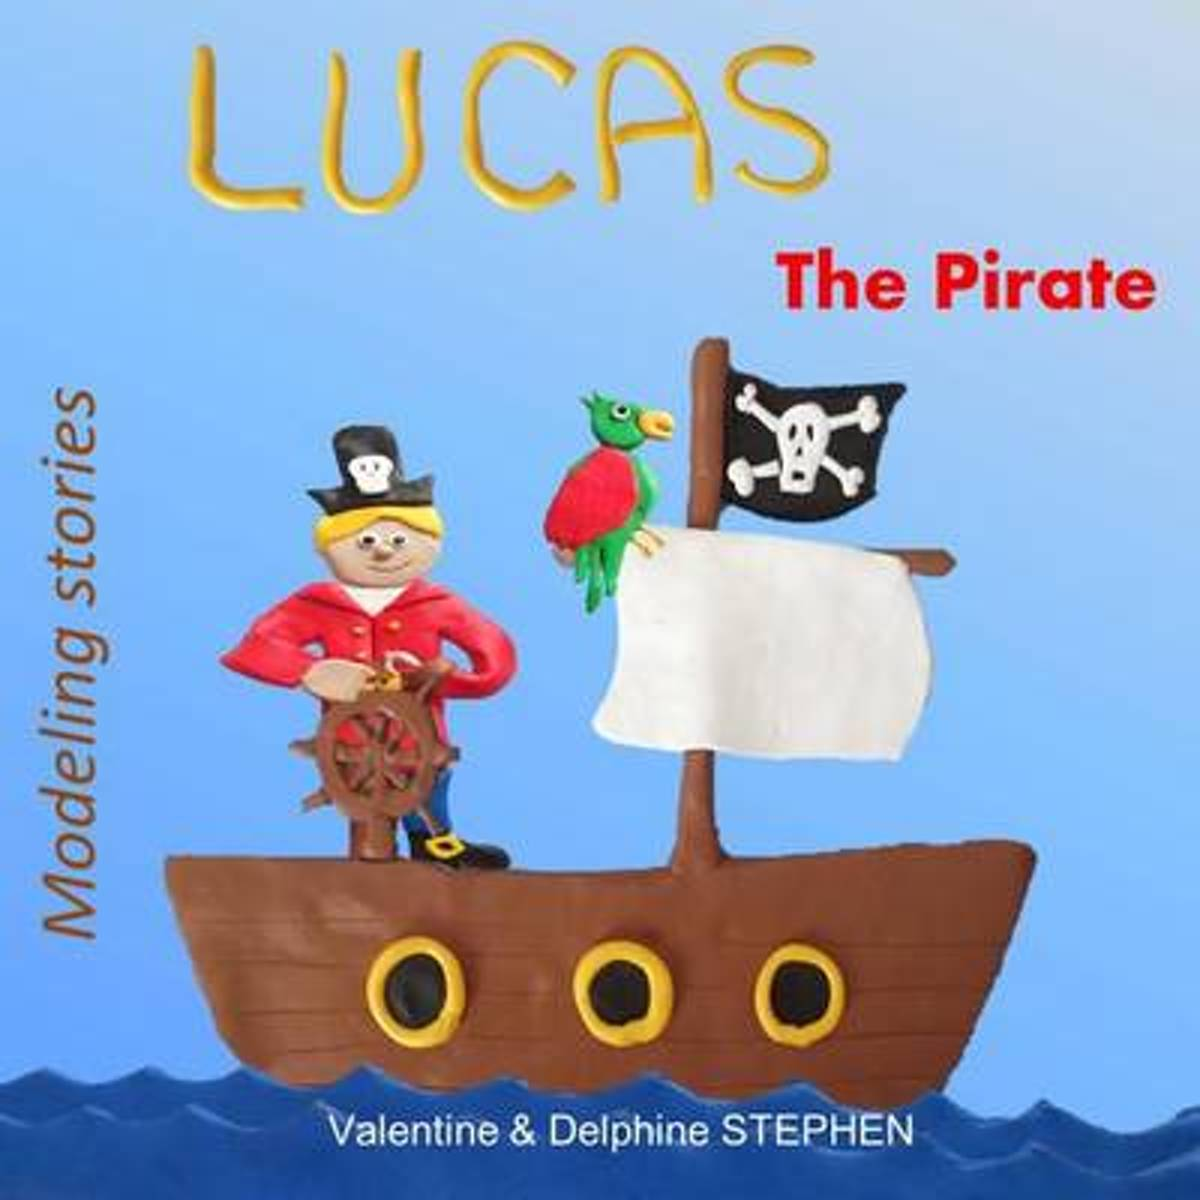 Lucas the Pirate